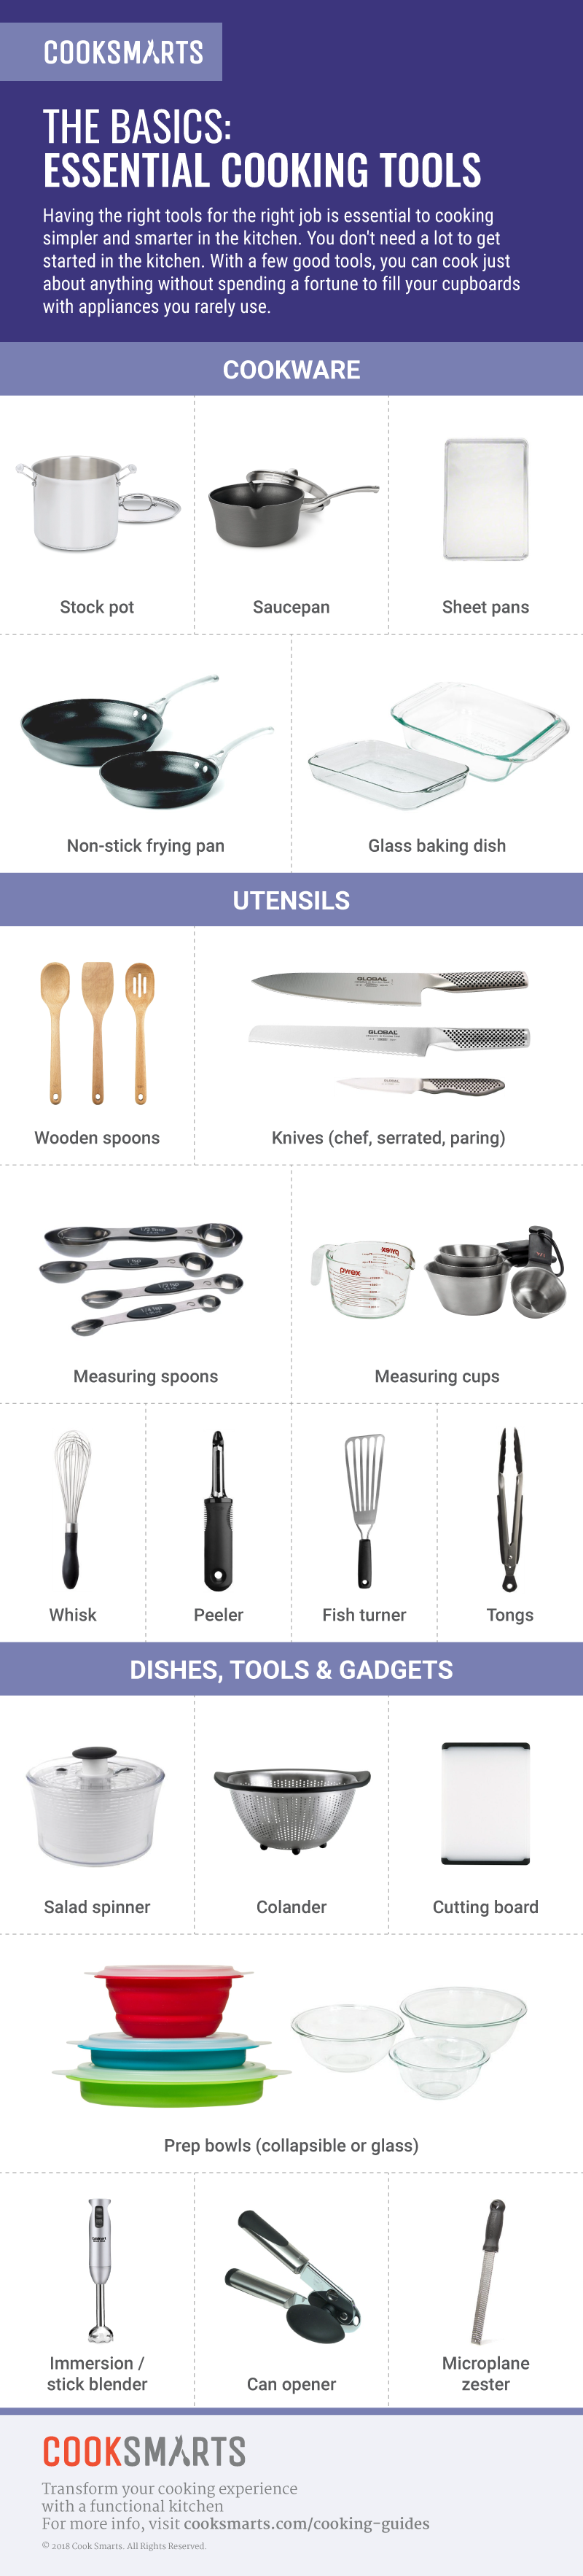 20 Must-Have Essential Cooking Tools | Cook Smarts Infographic